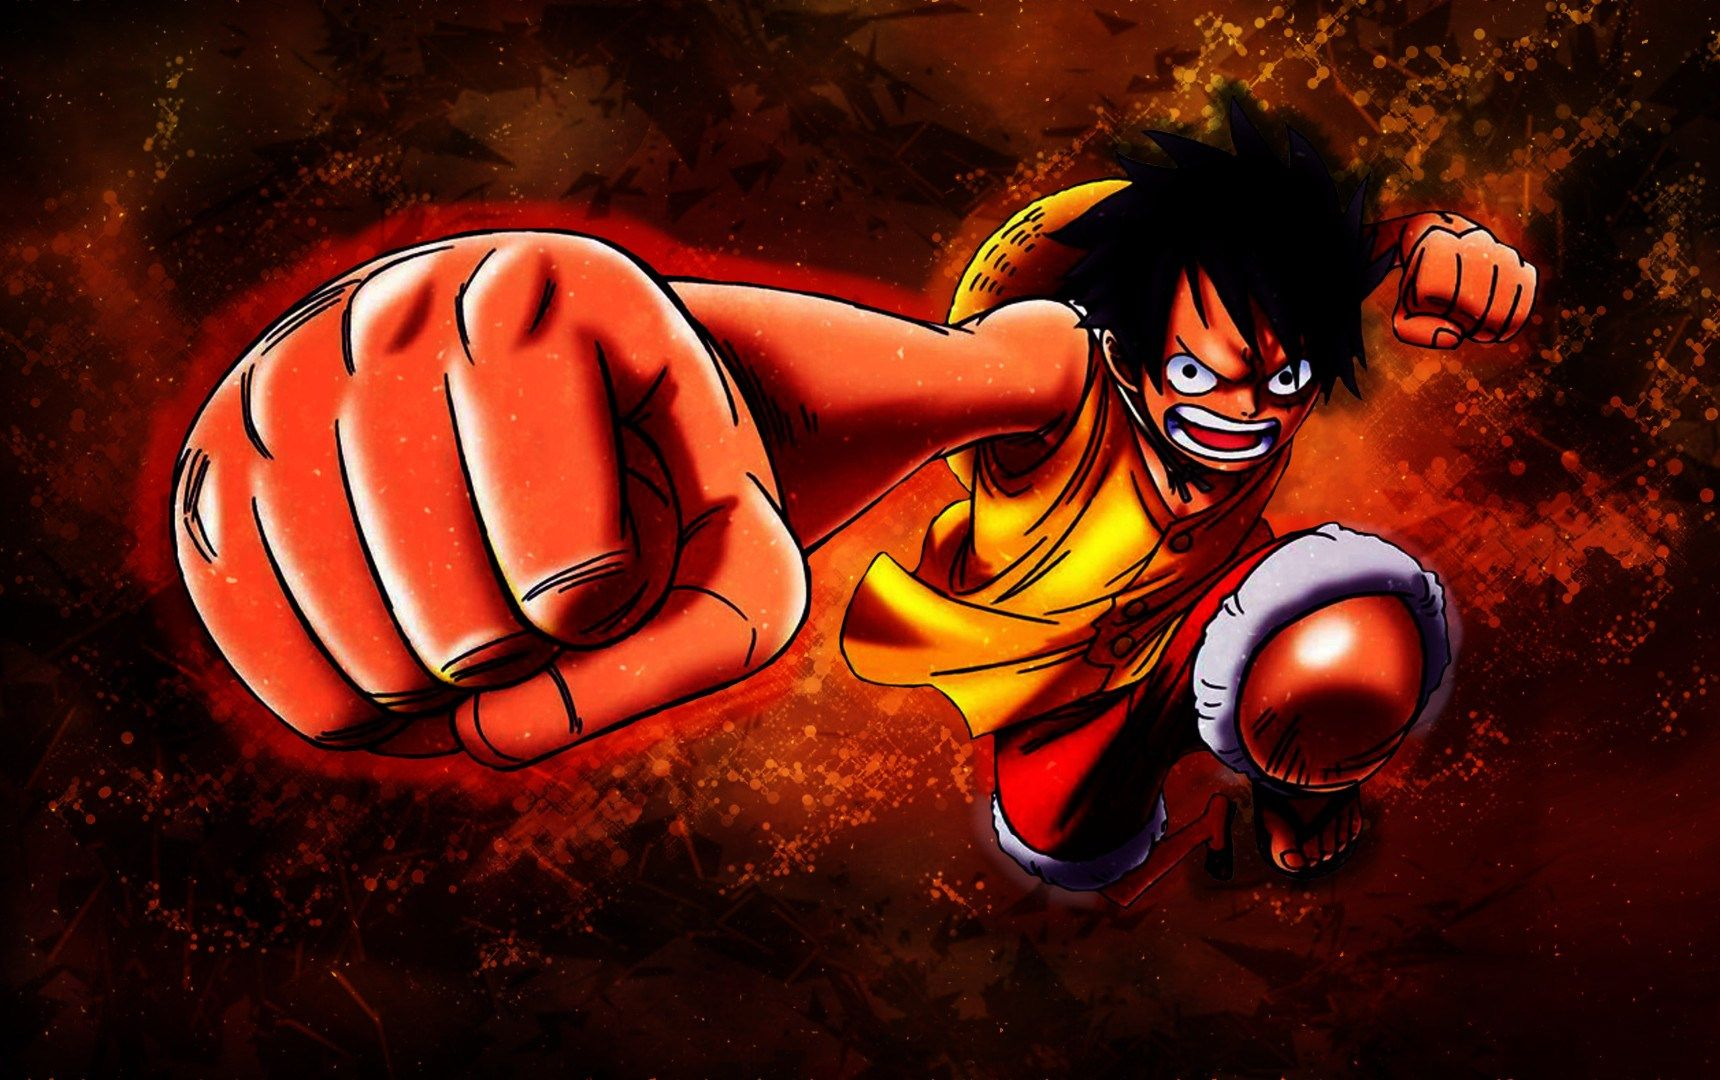 1720x1080 Px Free High Resolution Wallpaper One Piece By Biff Fairy